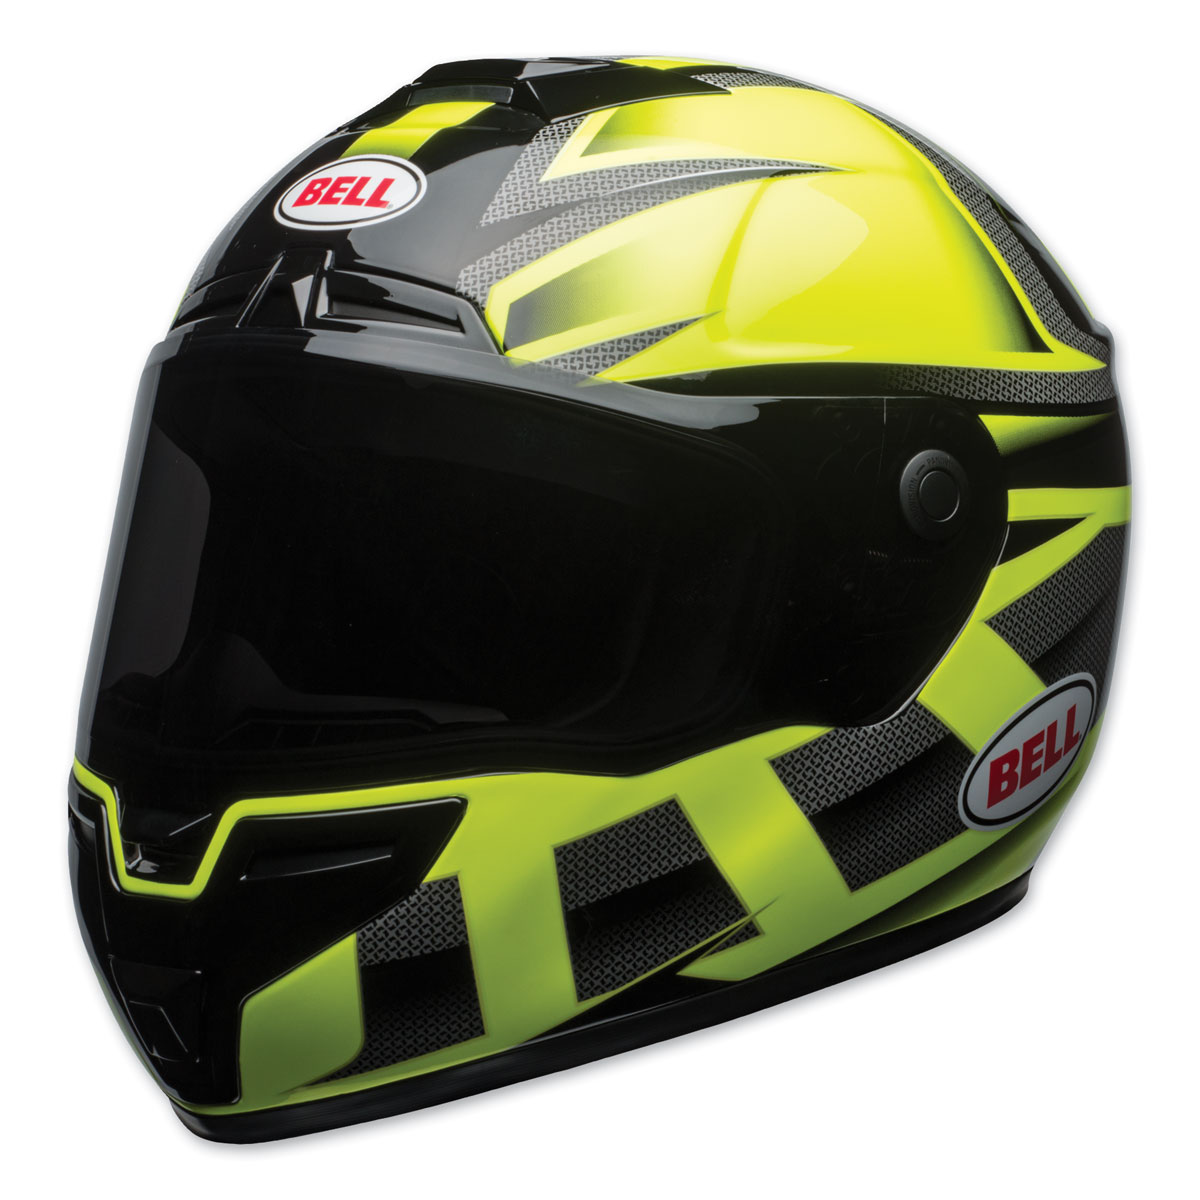 Bell SRT Predator Gloss Hi-Viz/Black Full Face Helmet